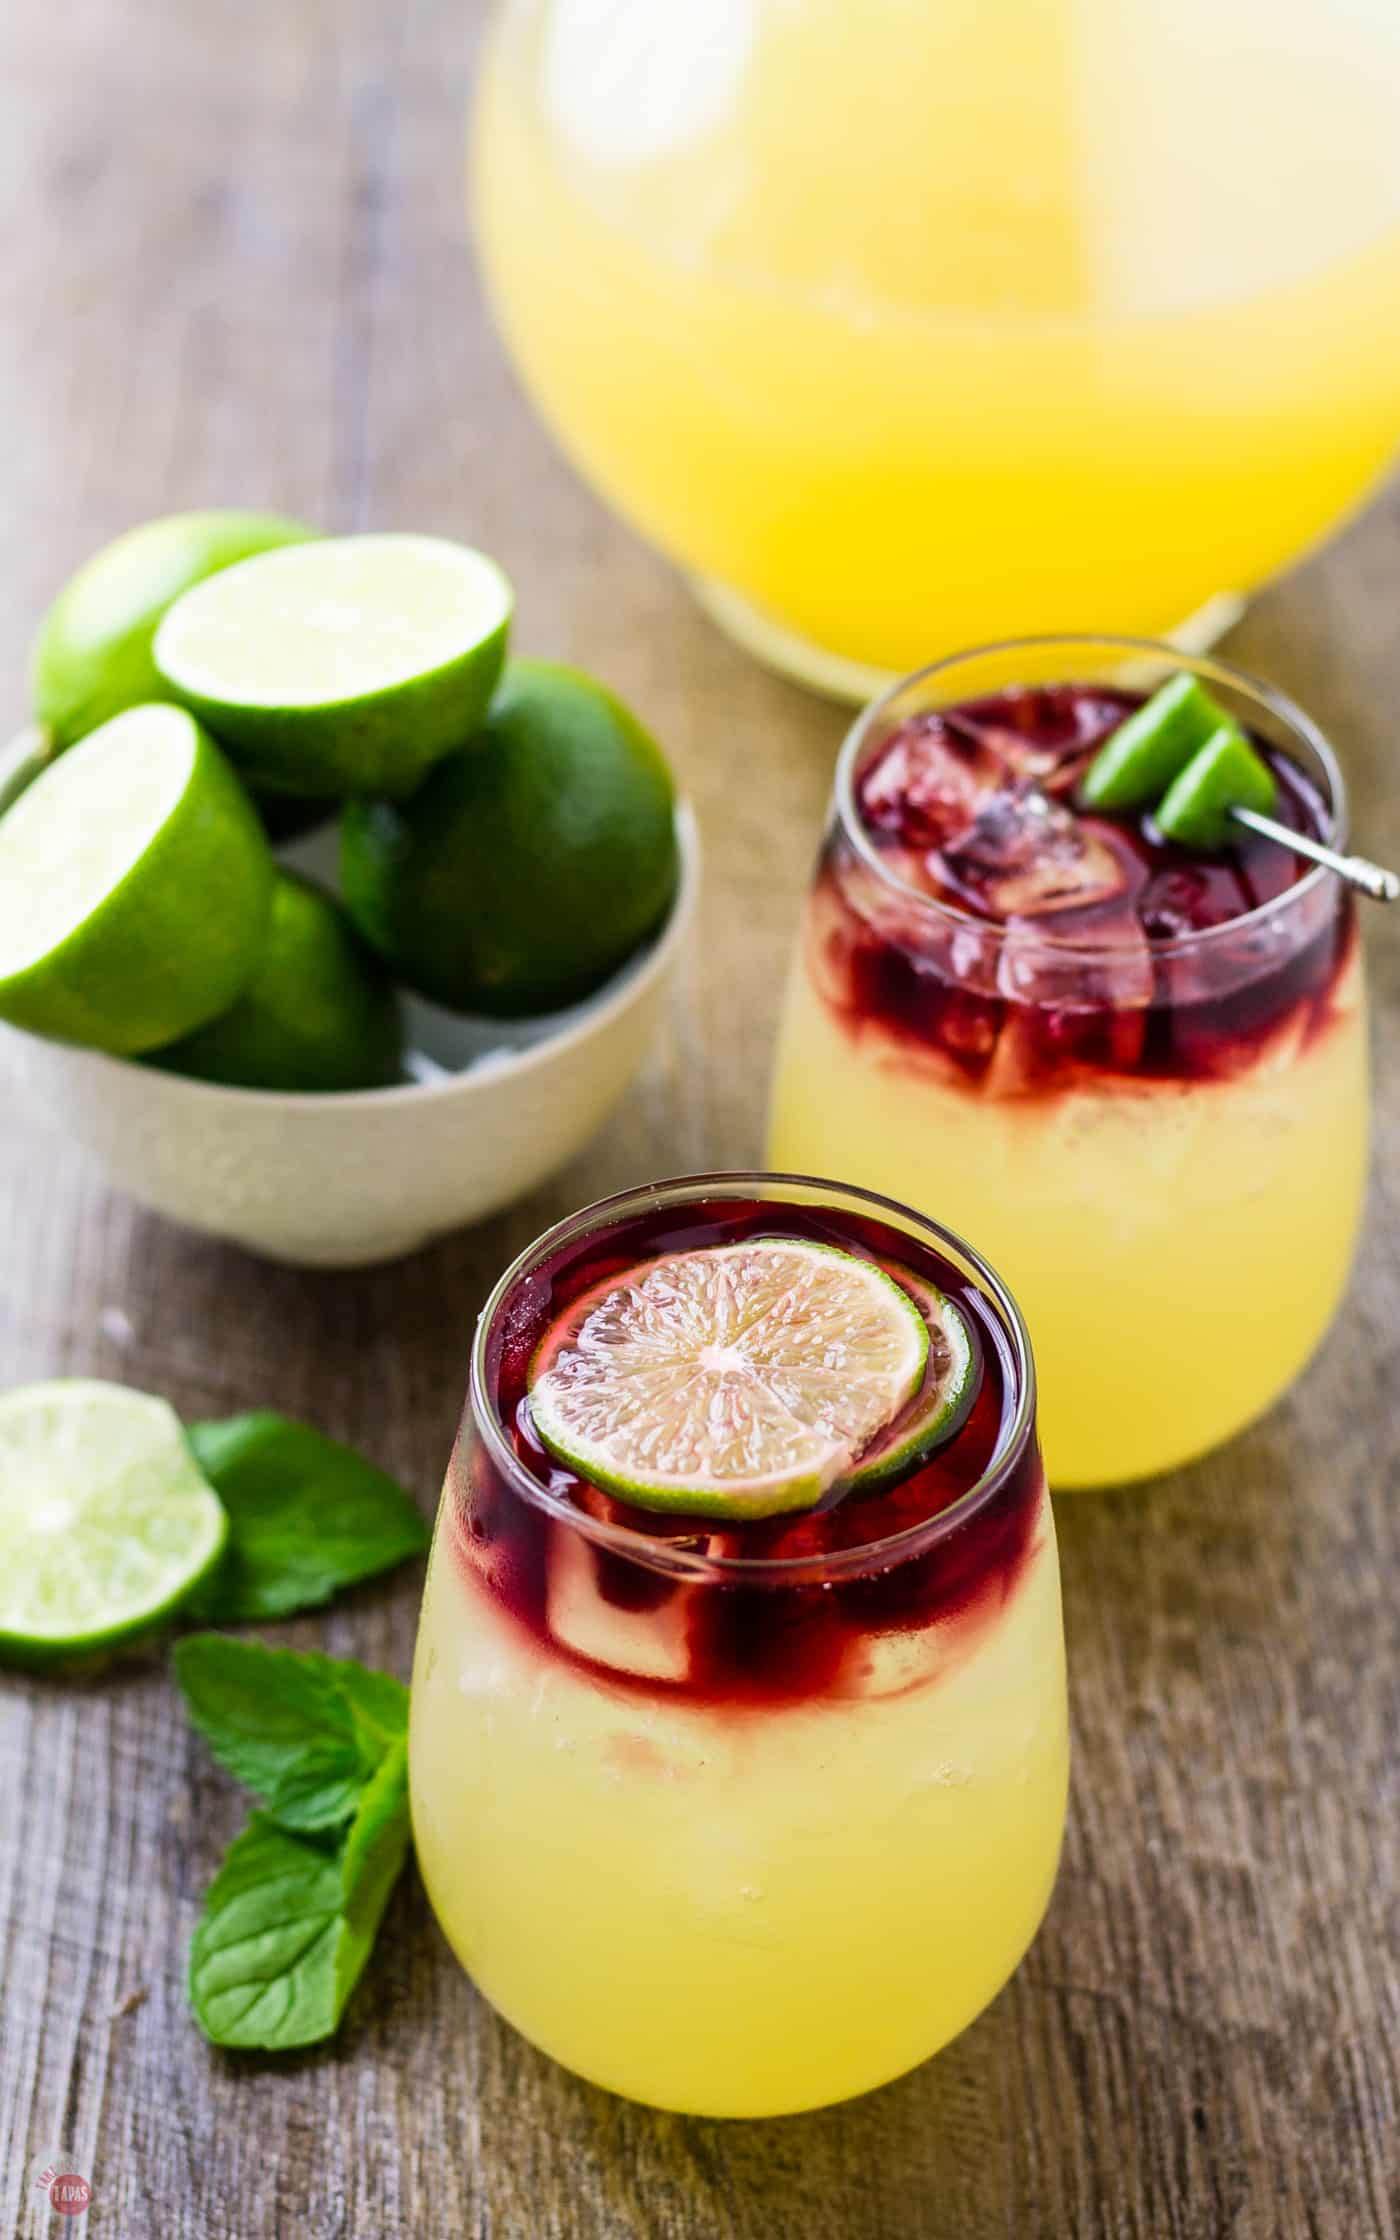 The layered look of the Wimade comes from the dark red wine or juice poured slowly on top of the limeade | Take Two Tapas | #Wimade #Wine #Limeade #HoneyLimeade #Wine #LayeredCocktail